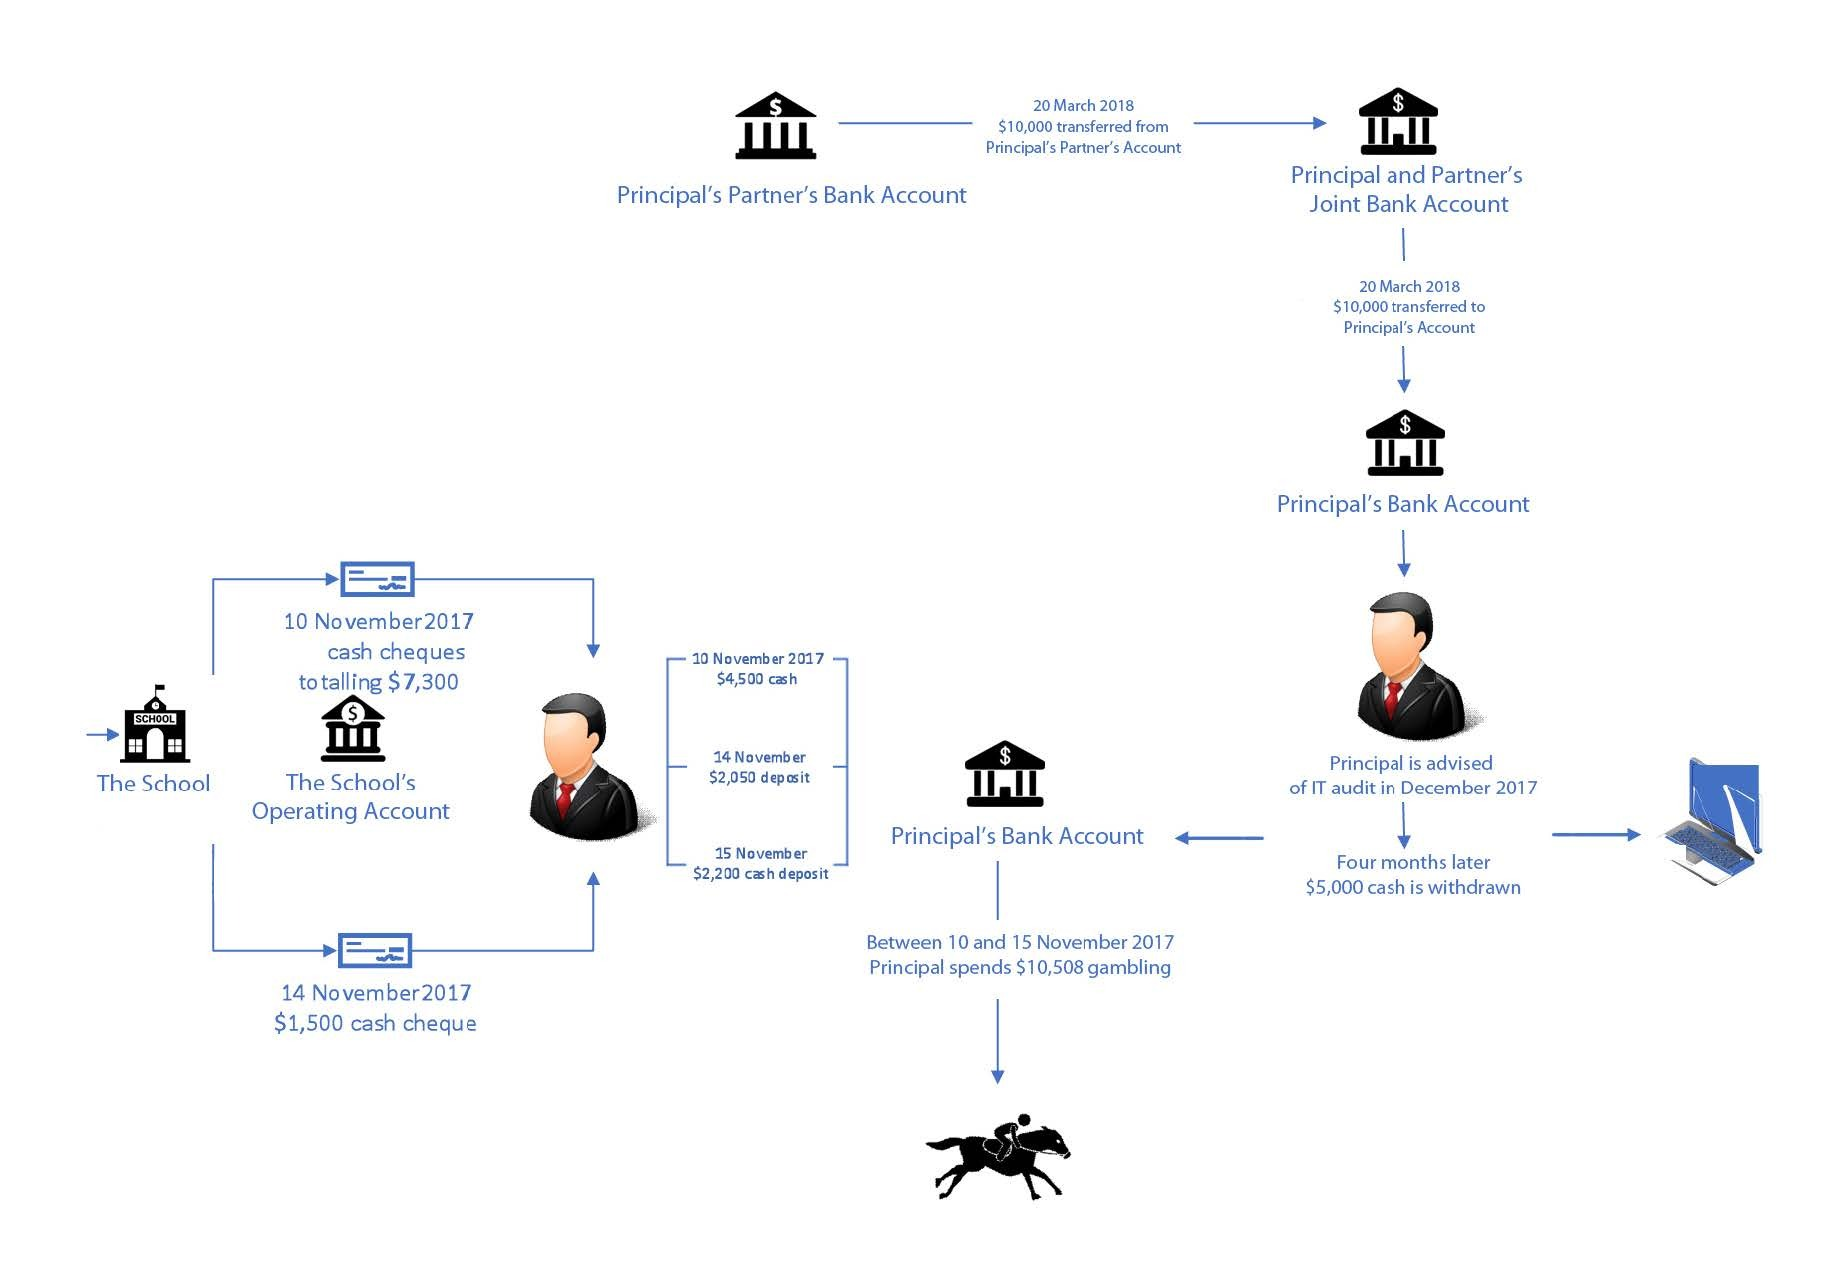 Figure 4: Diagram showing the transfer of cash from the School to the Principal's personal bank account and beyond, November 2017